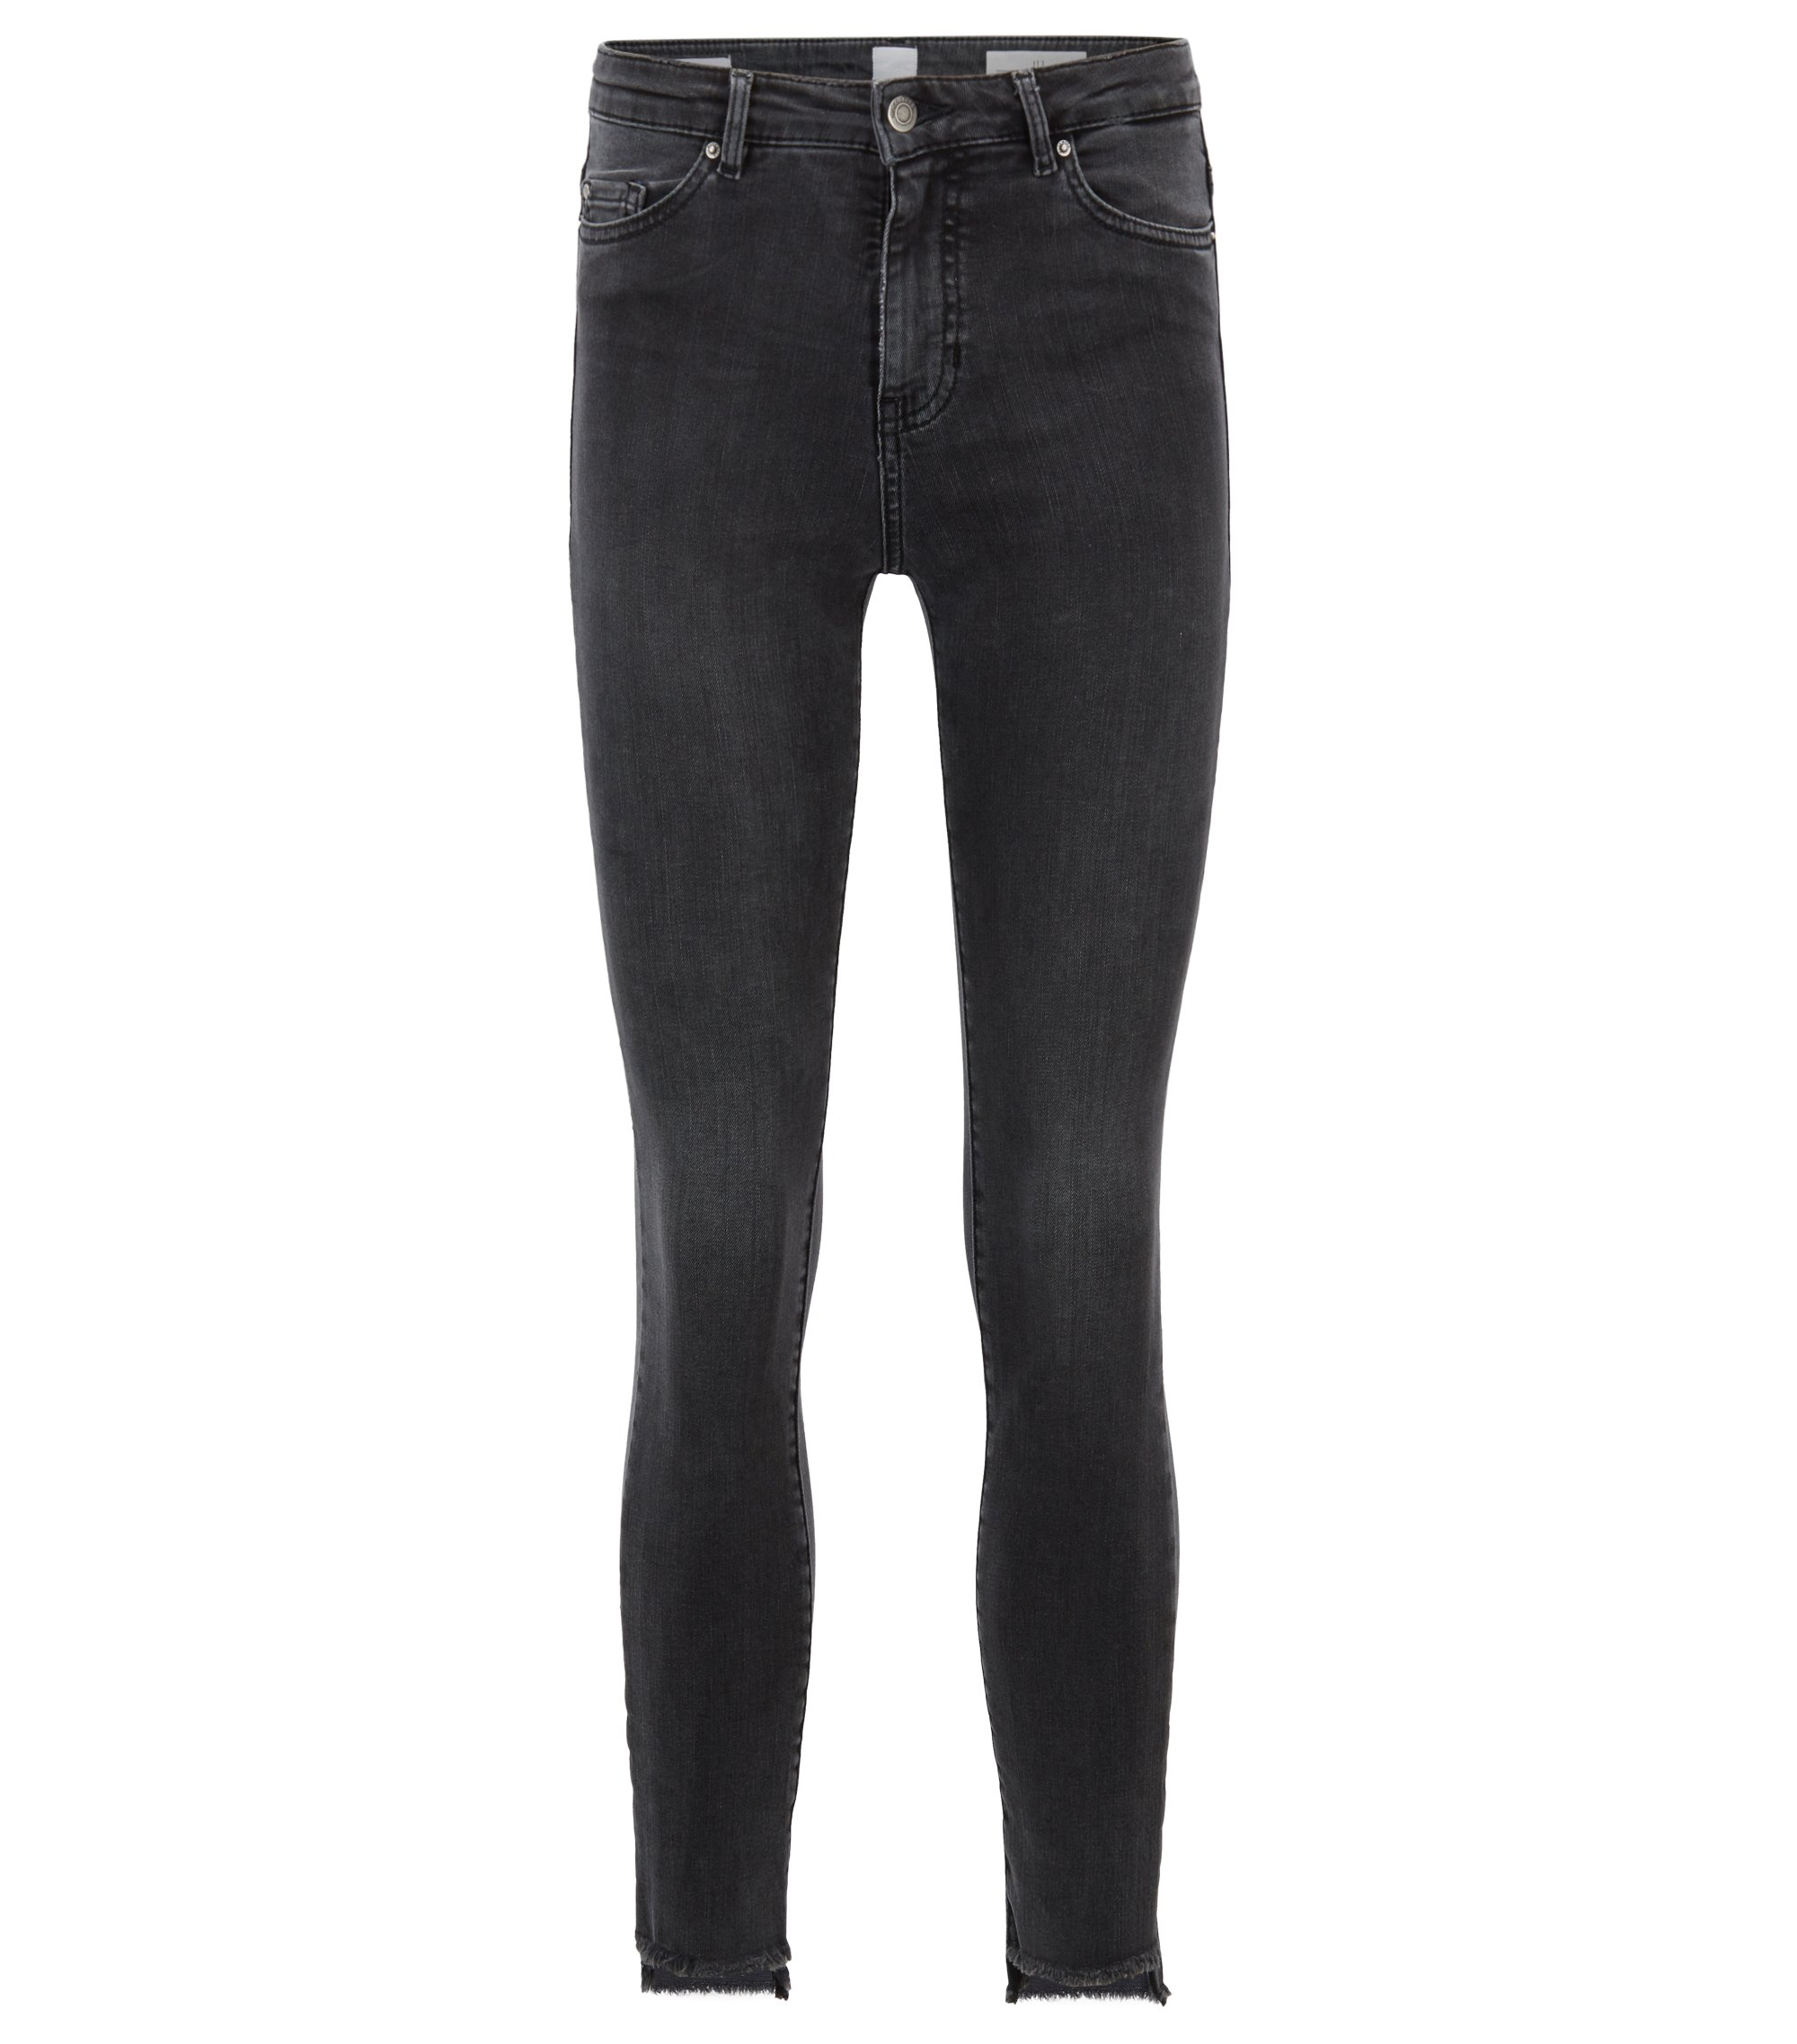 Skinny-Fit Jeans aus Power-Stretch-Denim in Cropped-Länge, Dunkelgrau